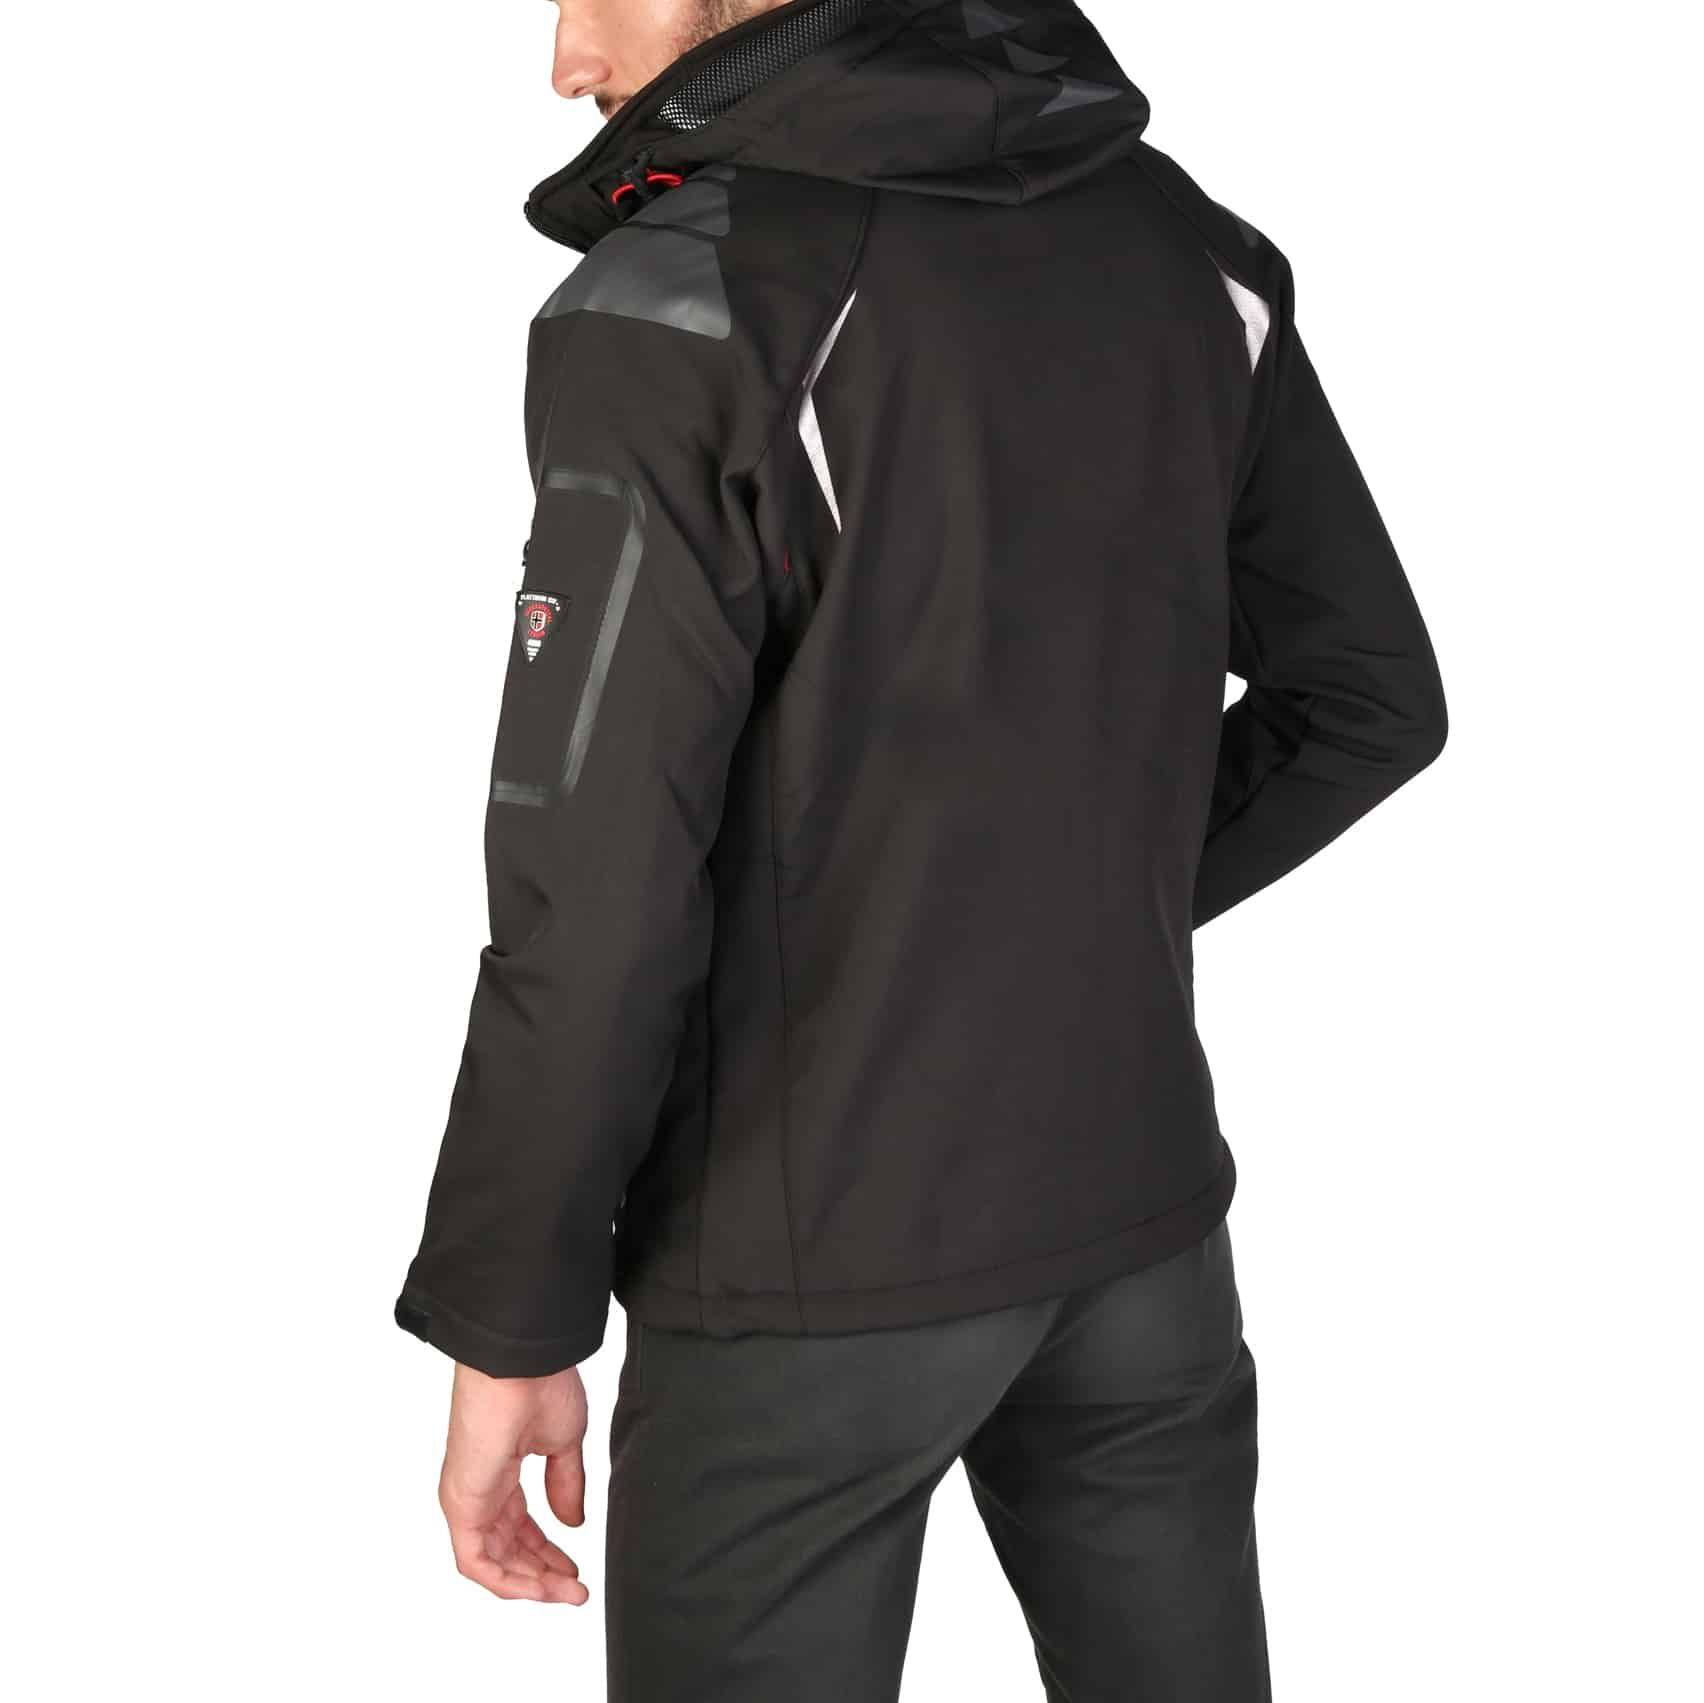 Vestes Geographical Norway – Techno_man